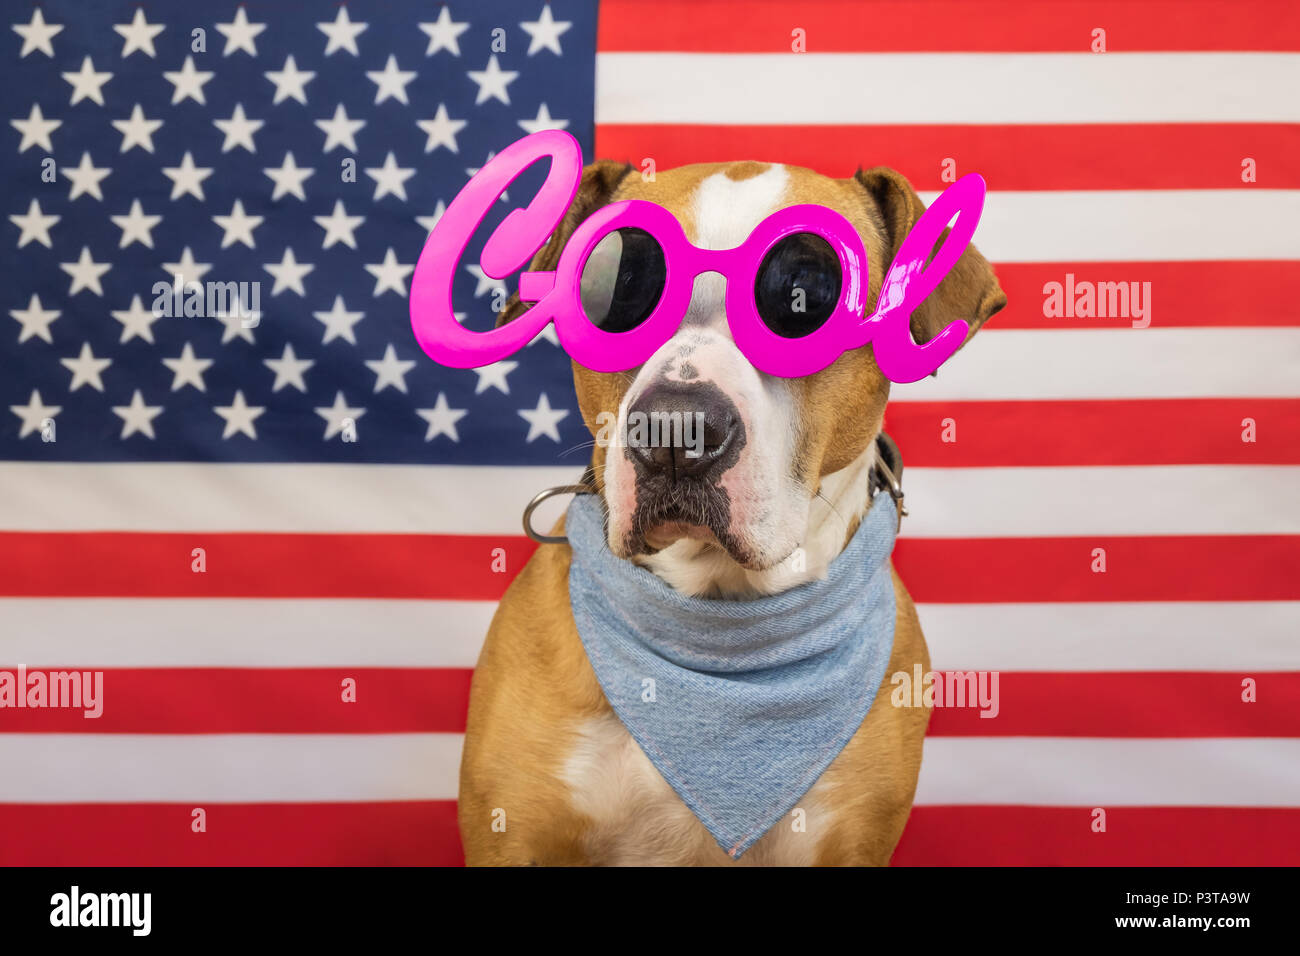 American independence day concept, with staffordshire terrier dog and stars and stripes flag in studio. Cheerful and happy pitbull dog in 'cool' masqu - Stock Image